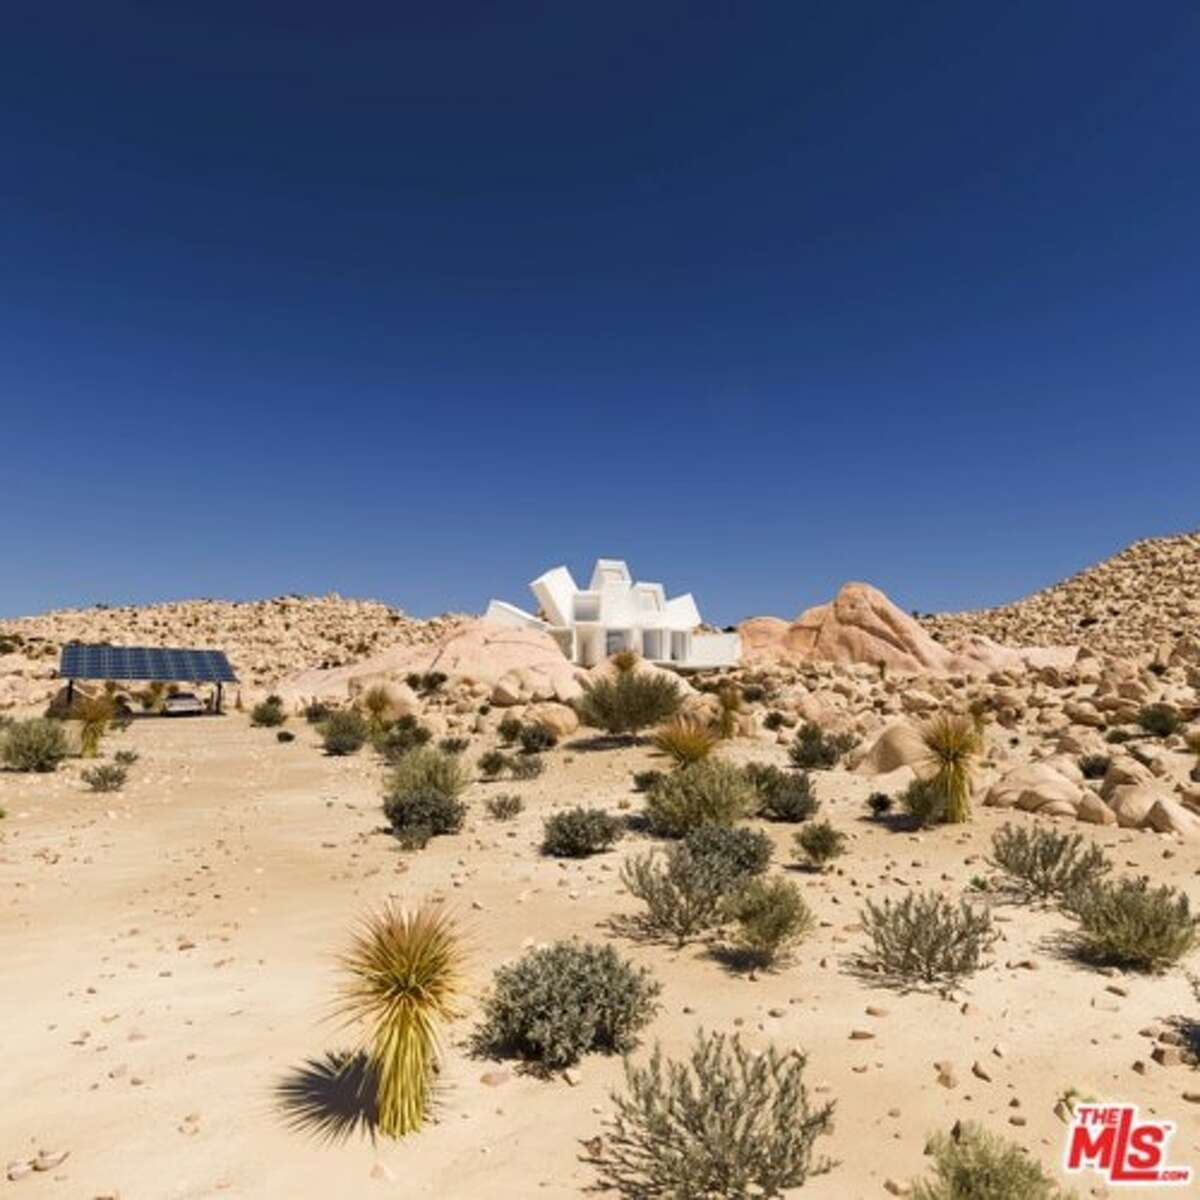 The home's address is Zero Wagon Wheel Road, which is less than a mile from Joshua Tree National Park on 22.5 acres of land.